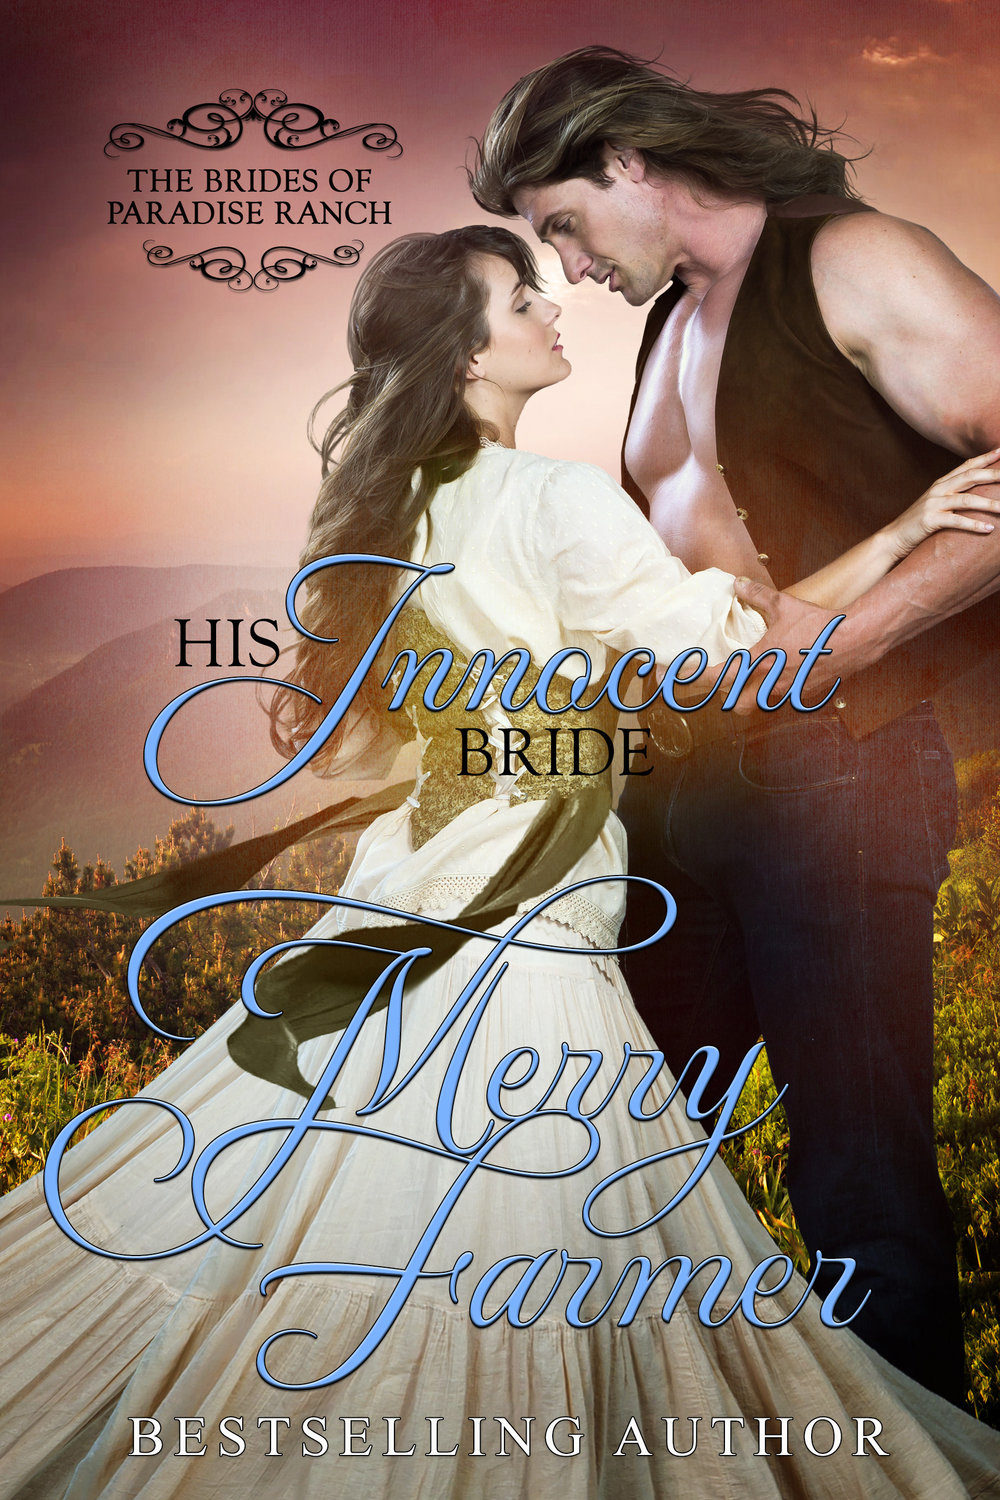 "His Innocent Bride (Book 11) - Everybody else was doing it, so why not him?Sam Standish has always prided himself on being a rough and rugged frontier saloonkeeper. Just because he likes to keep things neat and tidy, appreciates good home cooking, and thinks a grandfather clock would be a fine addition to any home does NOT mean he's the settling down type. But he sends away for a mail-order bride anyhow, expecting that once she arrives, his life will be as boring as plain toast.Julia Frost is a whirlwind in pink cotton who comes from a long line of people that have met early, gruesome, and unfortunate ends. But she's determined to make Sam happy…even if she has to drag him there kicking and screaming. Life in Haskell is everything Julia has ever longed for. She even finds a bosom friend in Bebe Bonneville.But chaos breaks loose when Julia and Bebe find a clue that indicates robber's loot is hidden in the saloon. And Sam's predictable world is turned on its head when Hubert Strong comes to him for help in wooing and winning Bebe. Will one set of sweethearts be able to help the others start a new life together (possibly with loot!) or will Rex Bonneville put an end to more than one romance?PLEASE BE ADVISED: Steam Level – HotIf you would like to read this book without any ""scenes"", check out Julia: The Innocent Bride."